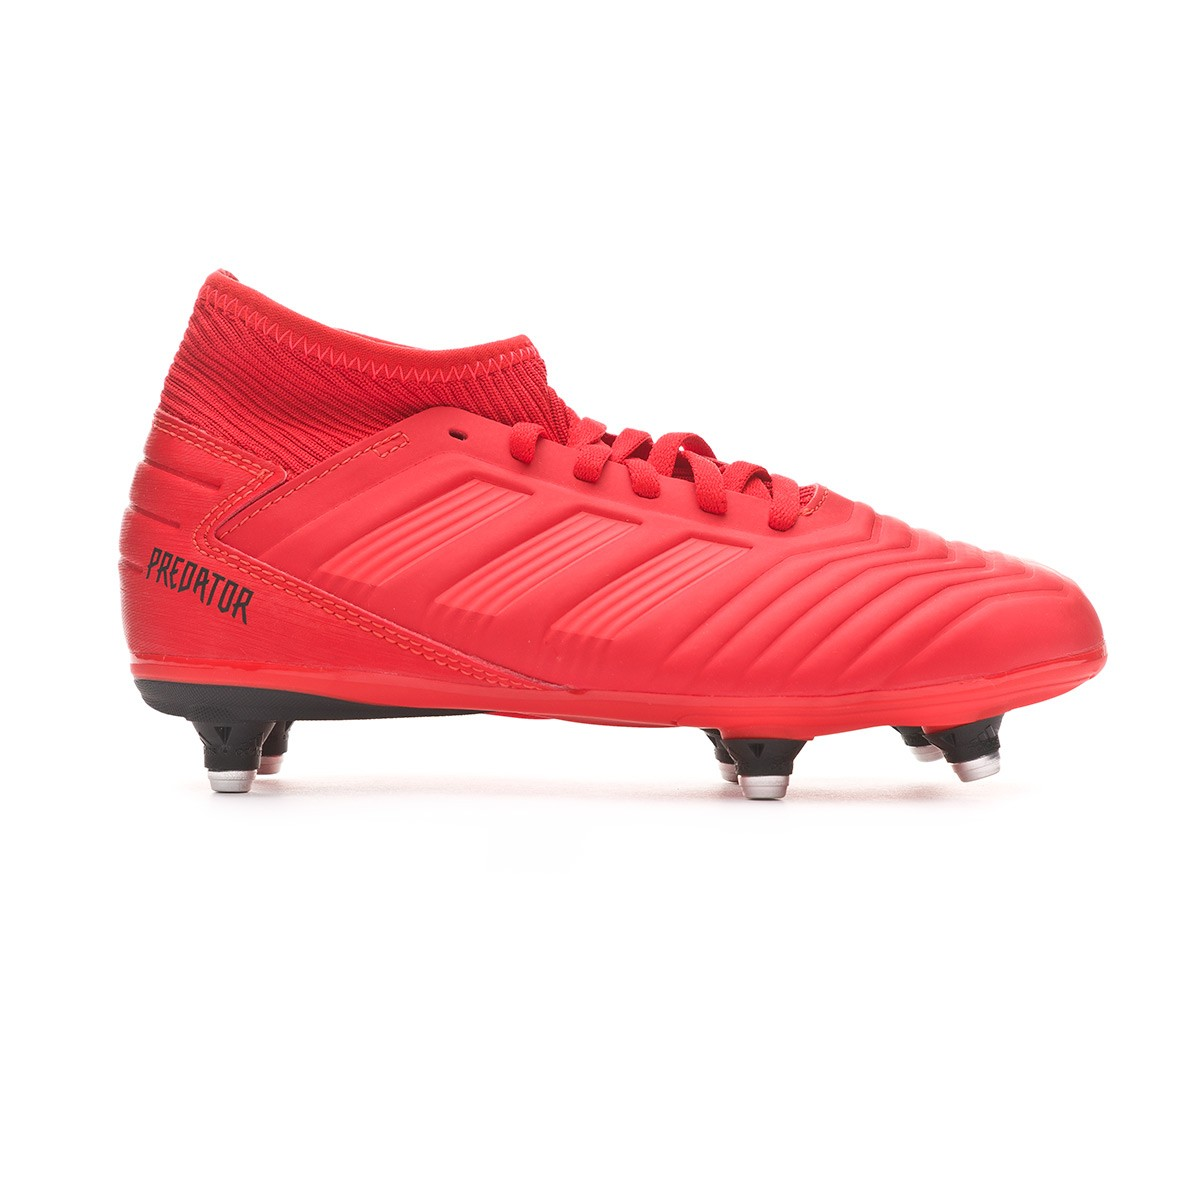 a505cac54 Football Boots adidas Kids Predator 19.3 SG Active red-Solar red-Core black  - Football store Fútbol Emotion